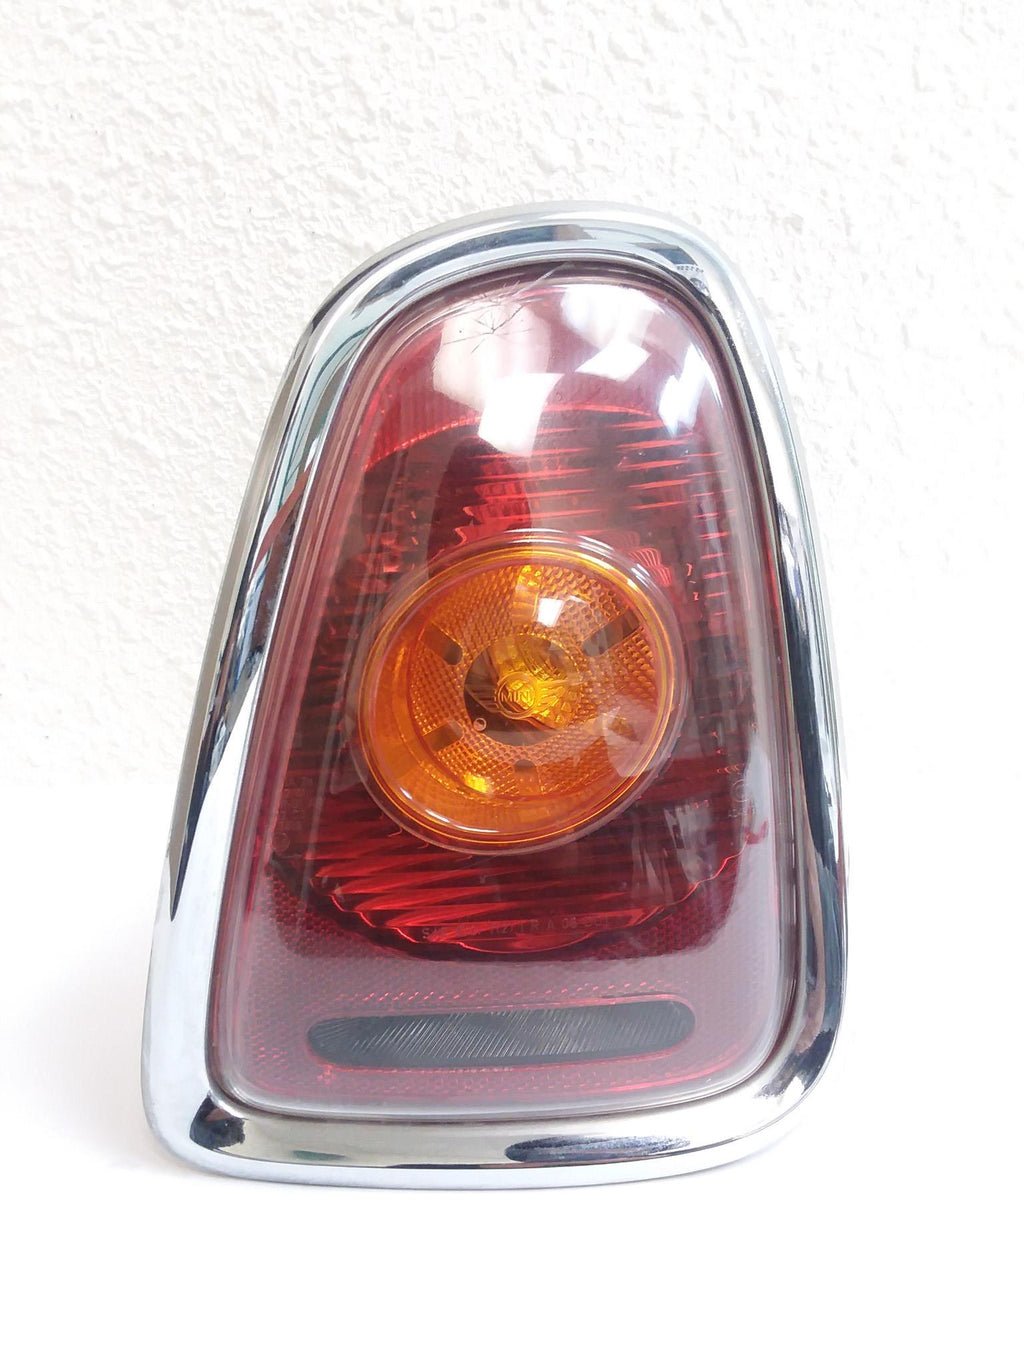 2007-2010 Mini Cooper S Rear Right Passenger Side Tail Light Lamp 2751308 OEM